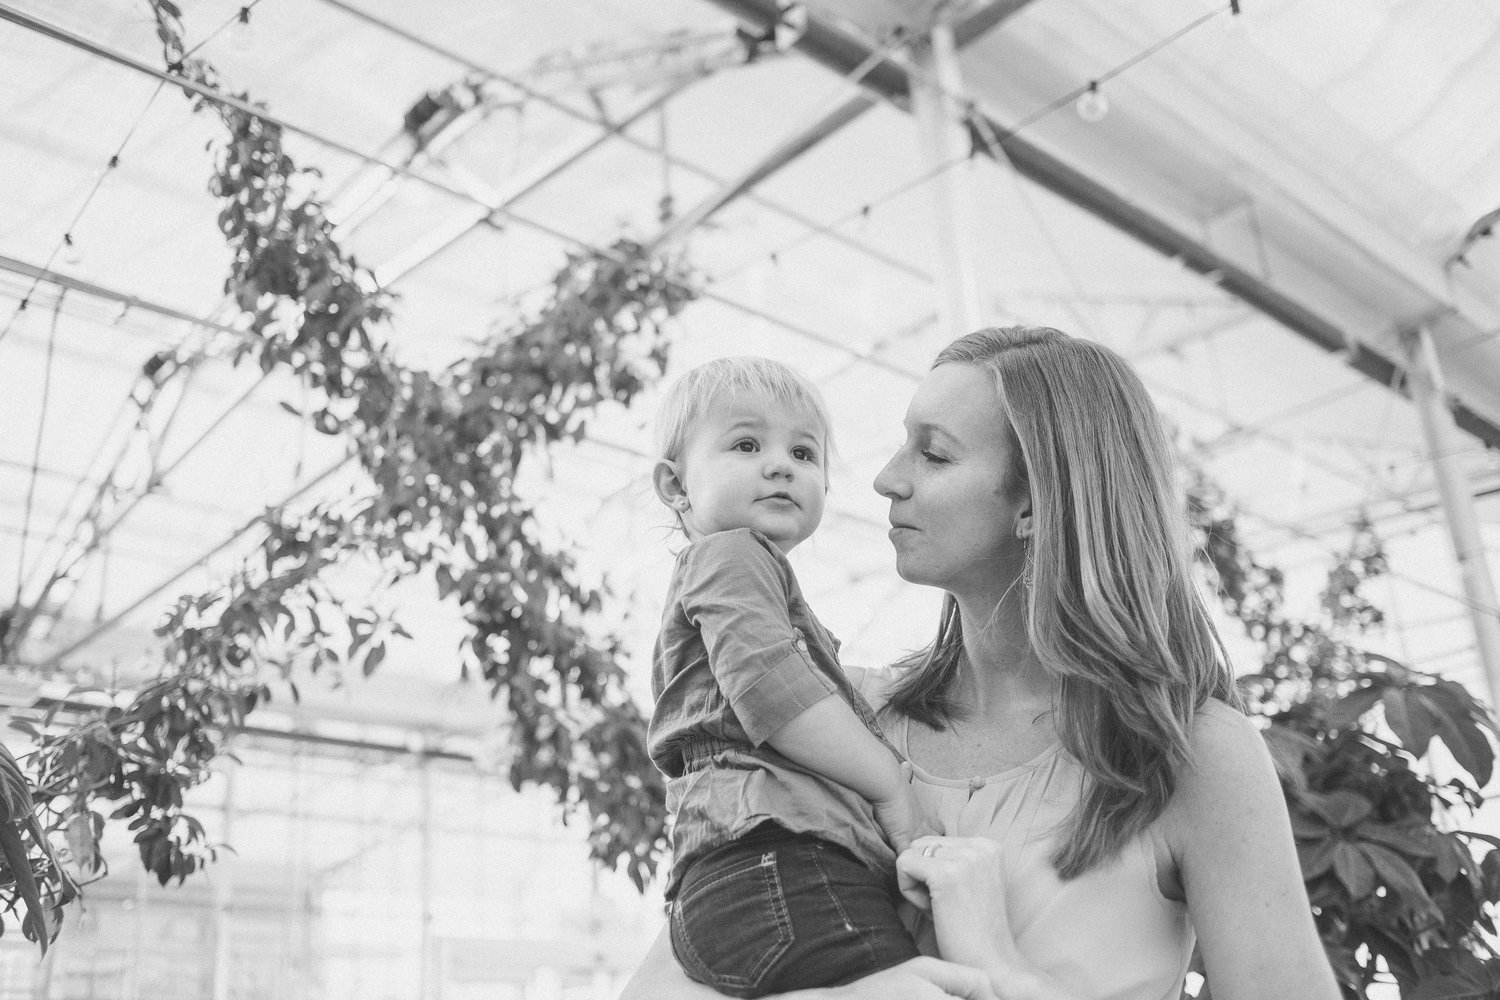 """{And this is the other side of life I am living right now. The part called """"Being a Mom to Toddler"""" that won't stop just because of  what we are going through with our unborn child.  At times it's ironic how even though I love being a mom, and even though I want another child so badly, I still struggle with those moments wondering if what I am doing is important. Wondering if there are """"better"""" things I could be doing with my time. I sometimes forget that motherhood and all it entails, is an act of worship.}"""